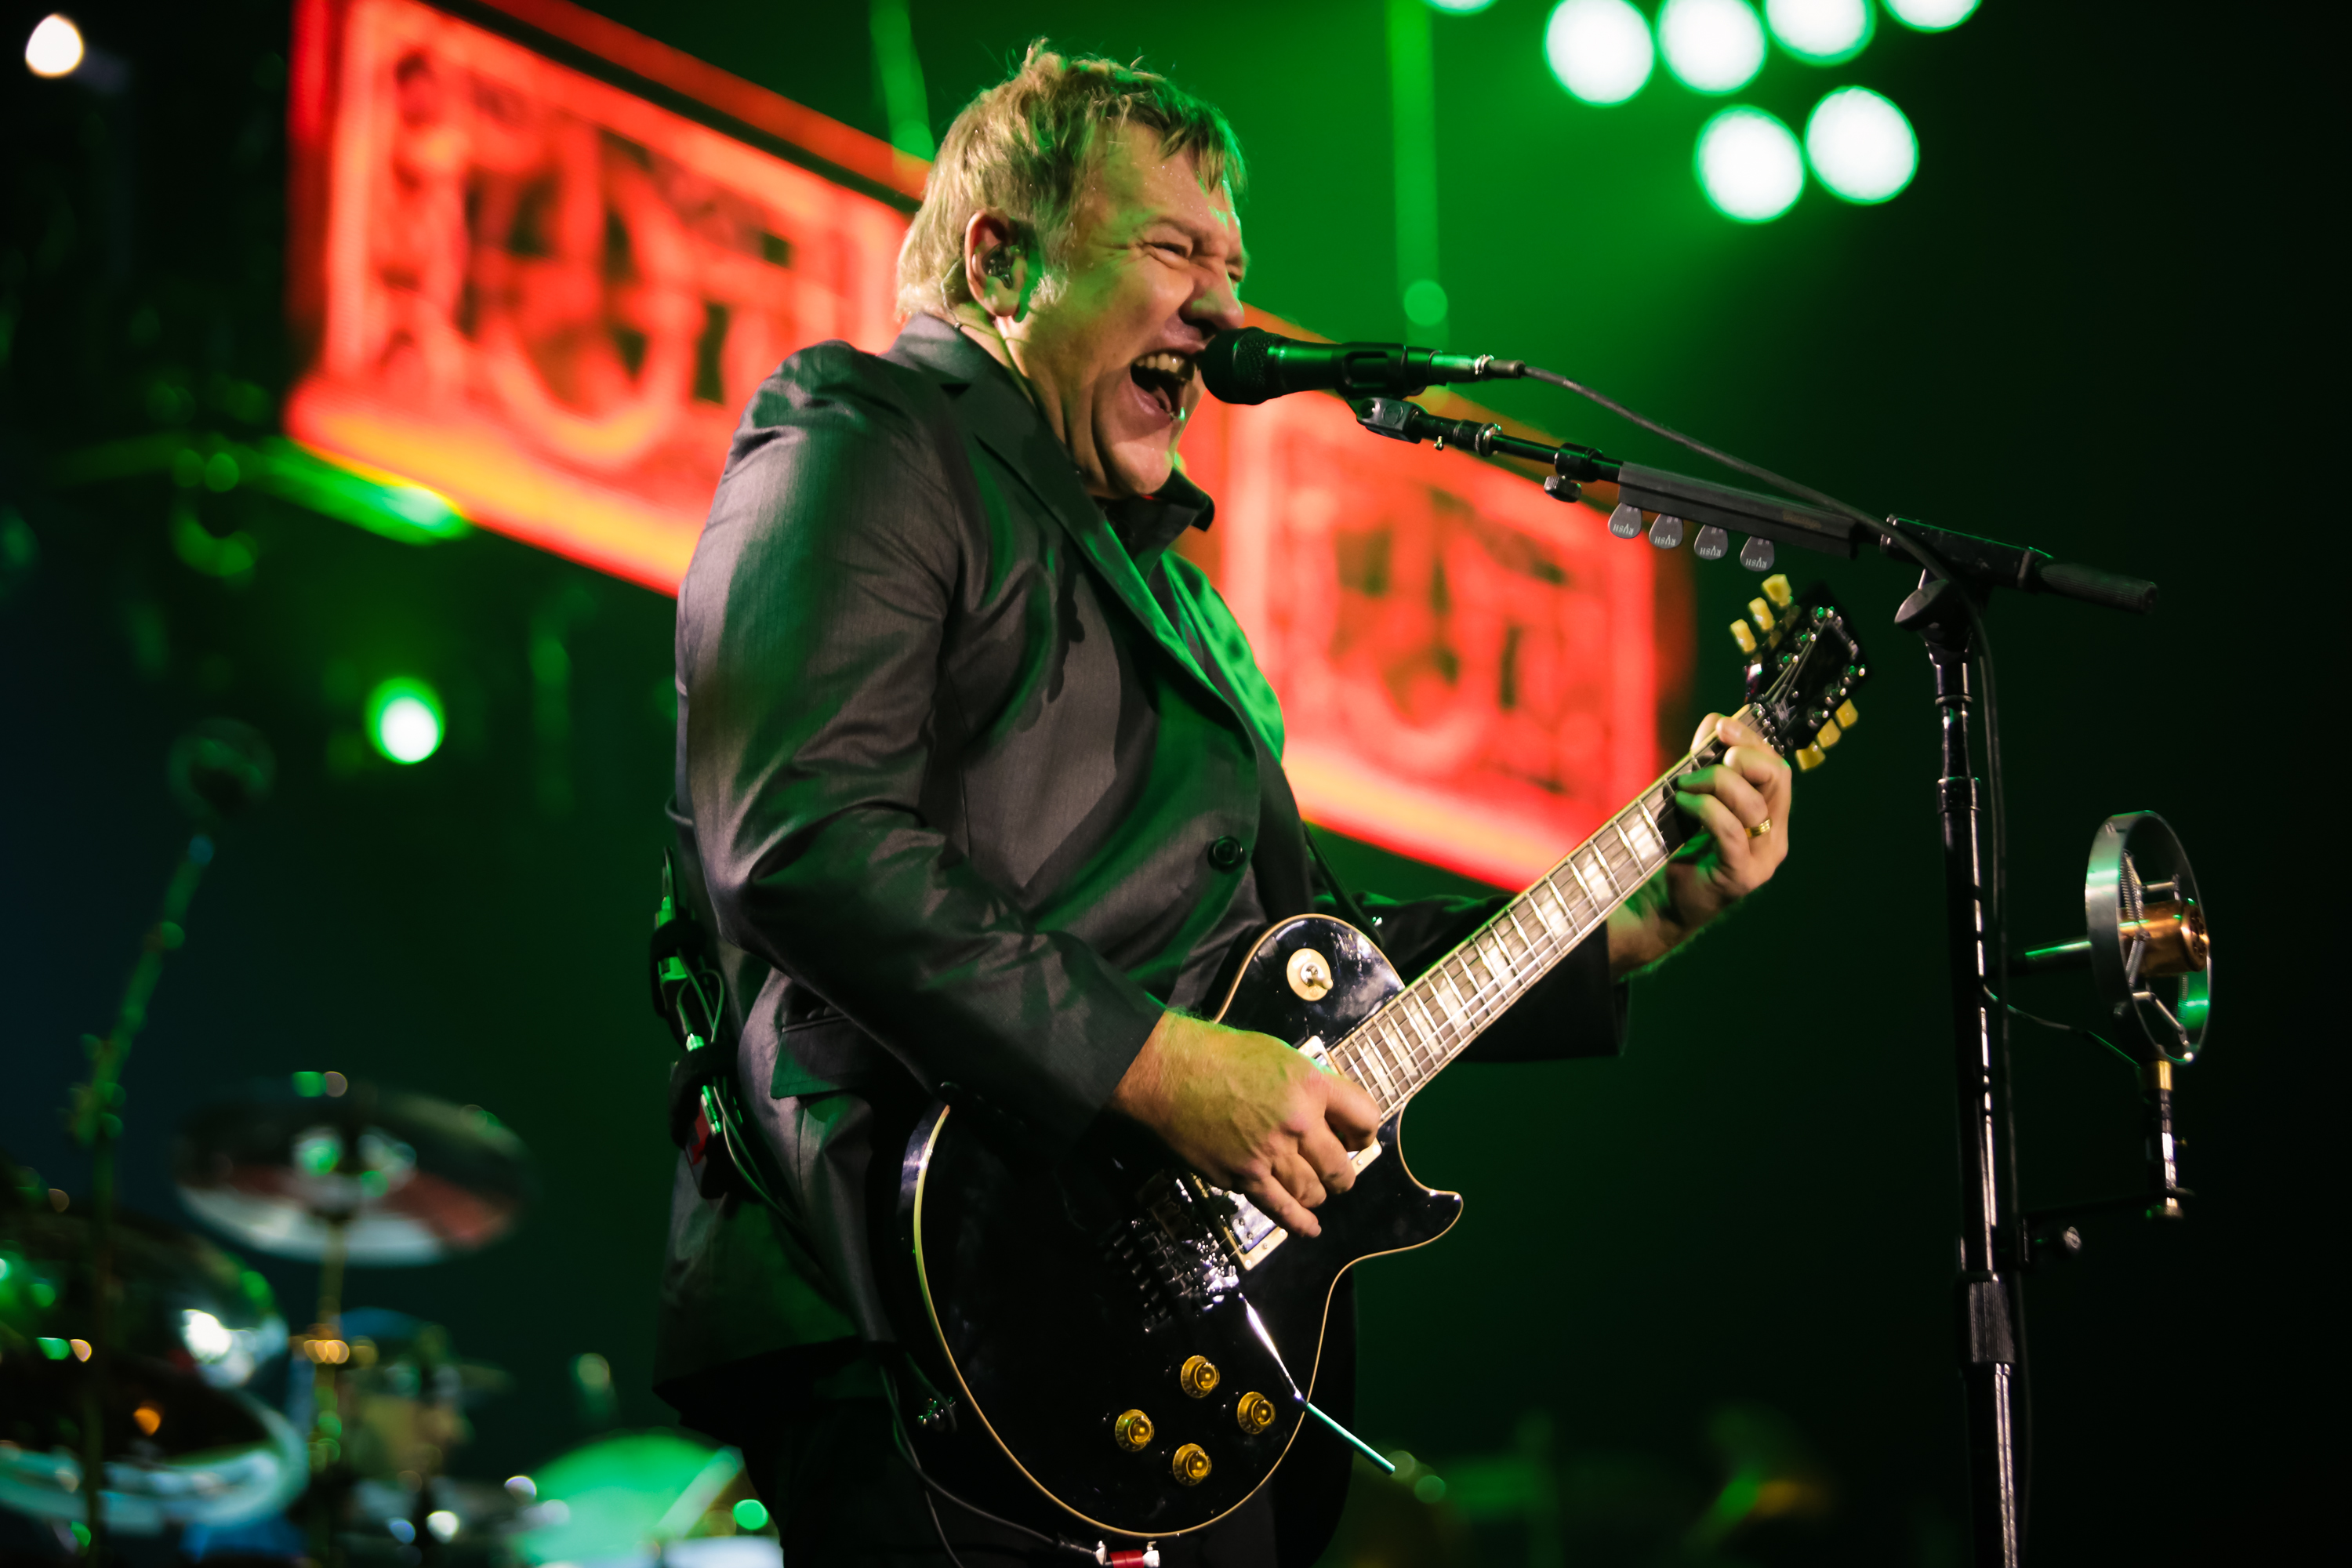 LONDON, UNITED KINGDOM - MAY 24: Alex Lifeson of Rush performs on stage at O2 Arena on May 24, 2013 in London, England. (Phot